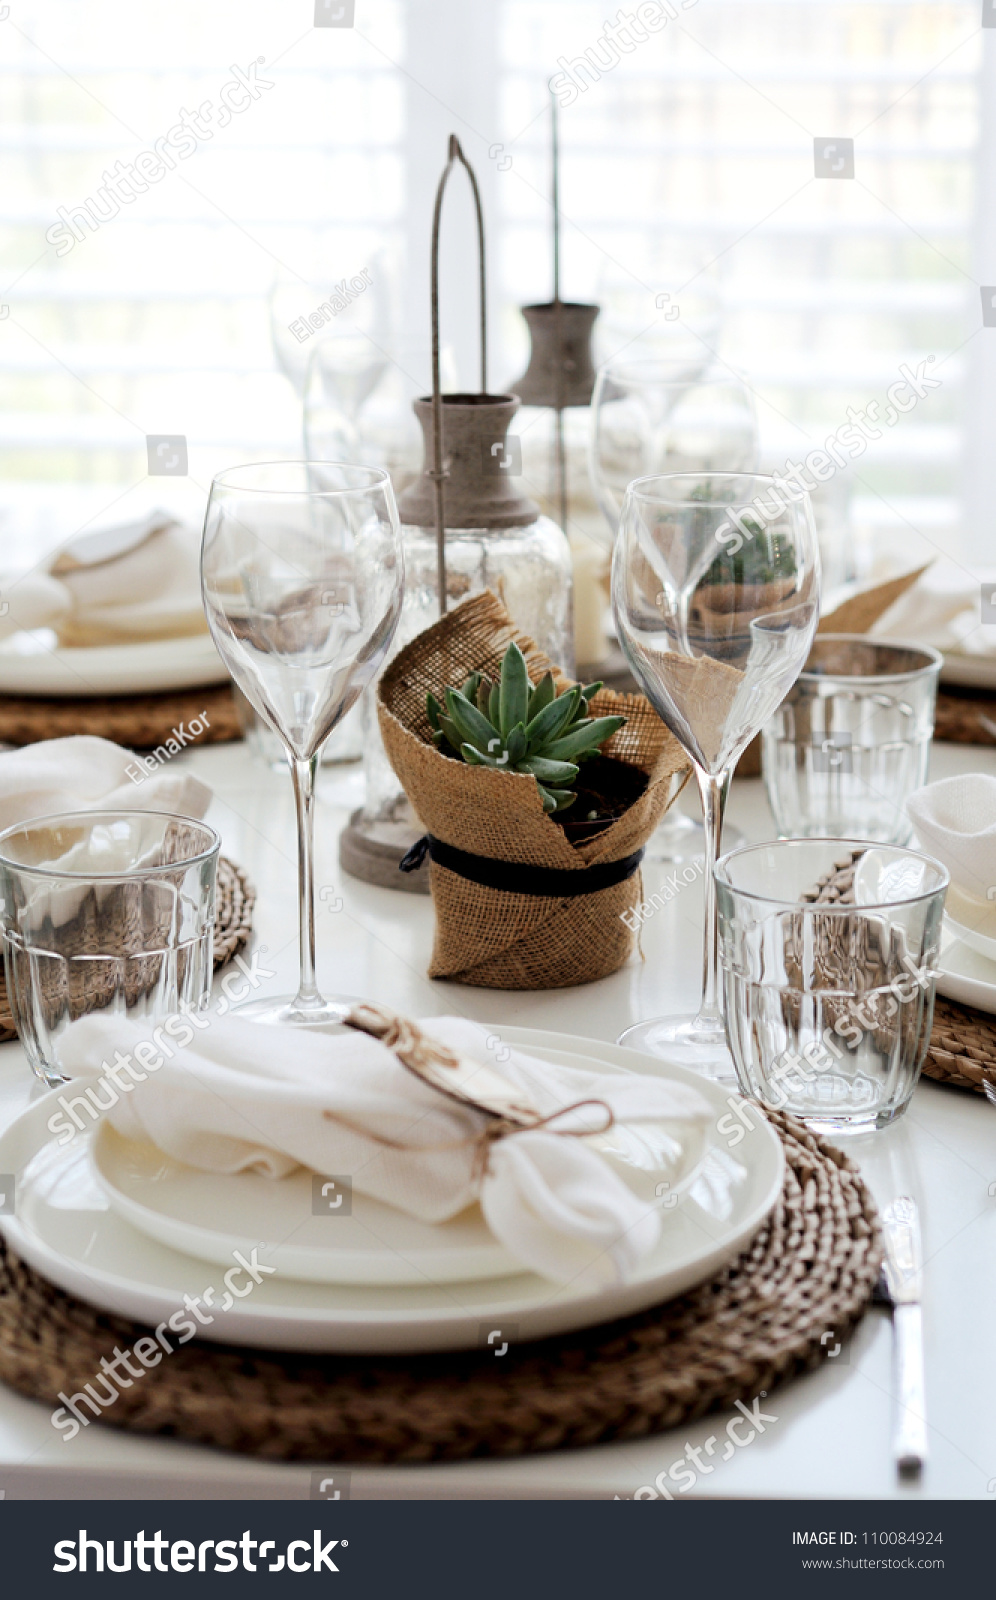 Table Setting For Lunch : Summer Table Setting For Lunch Stock Photo 110084924 : Shutterstock